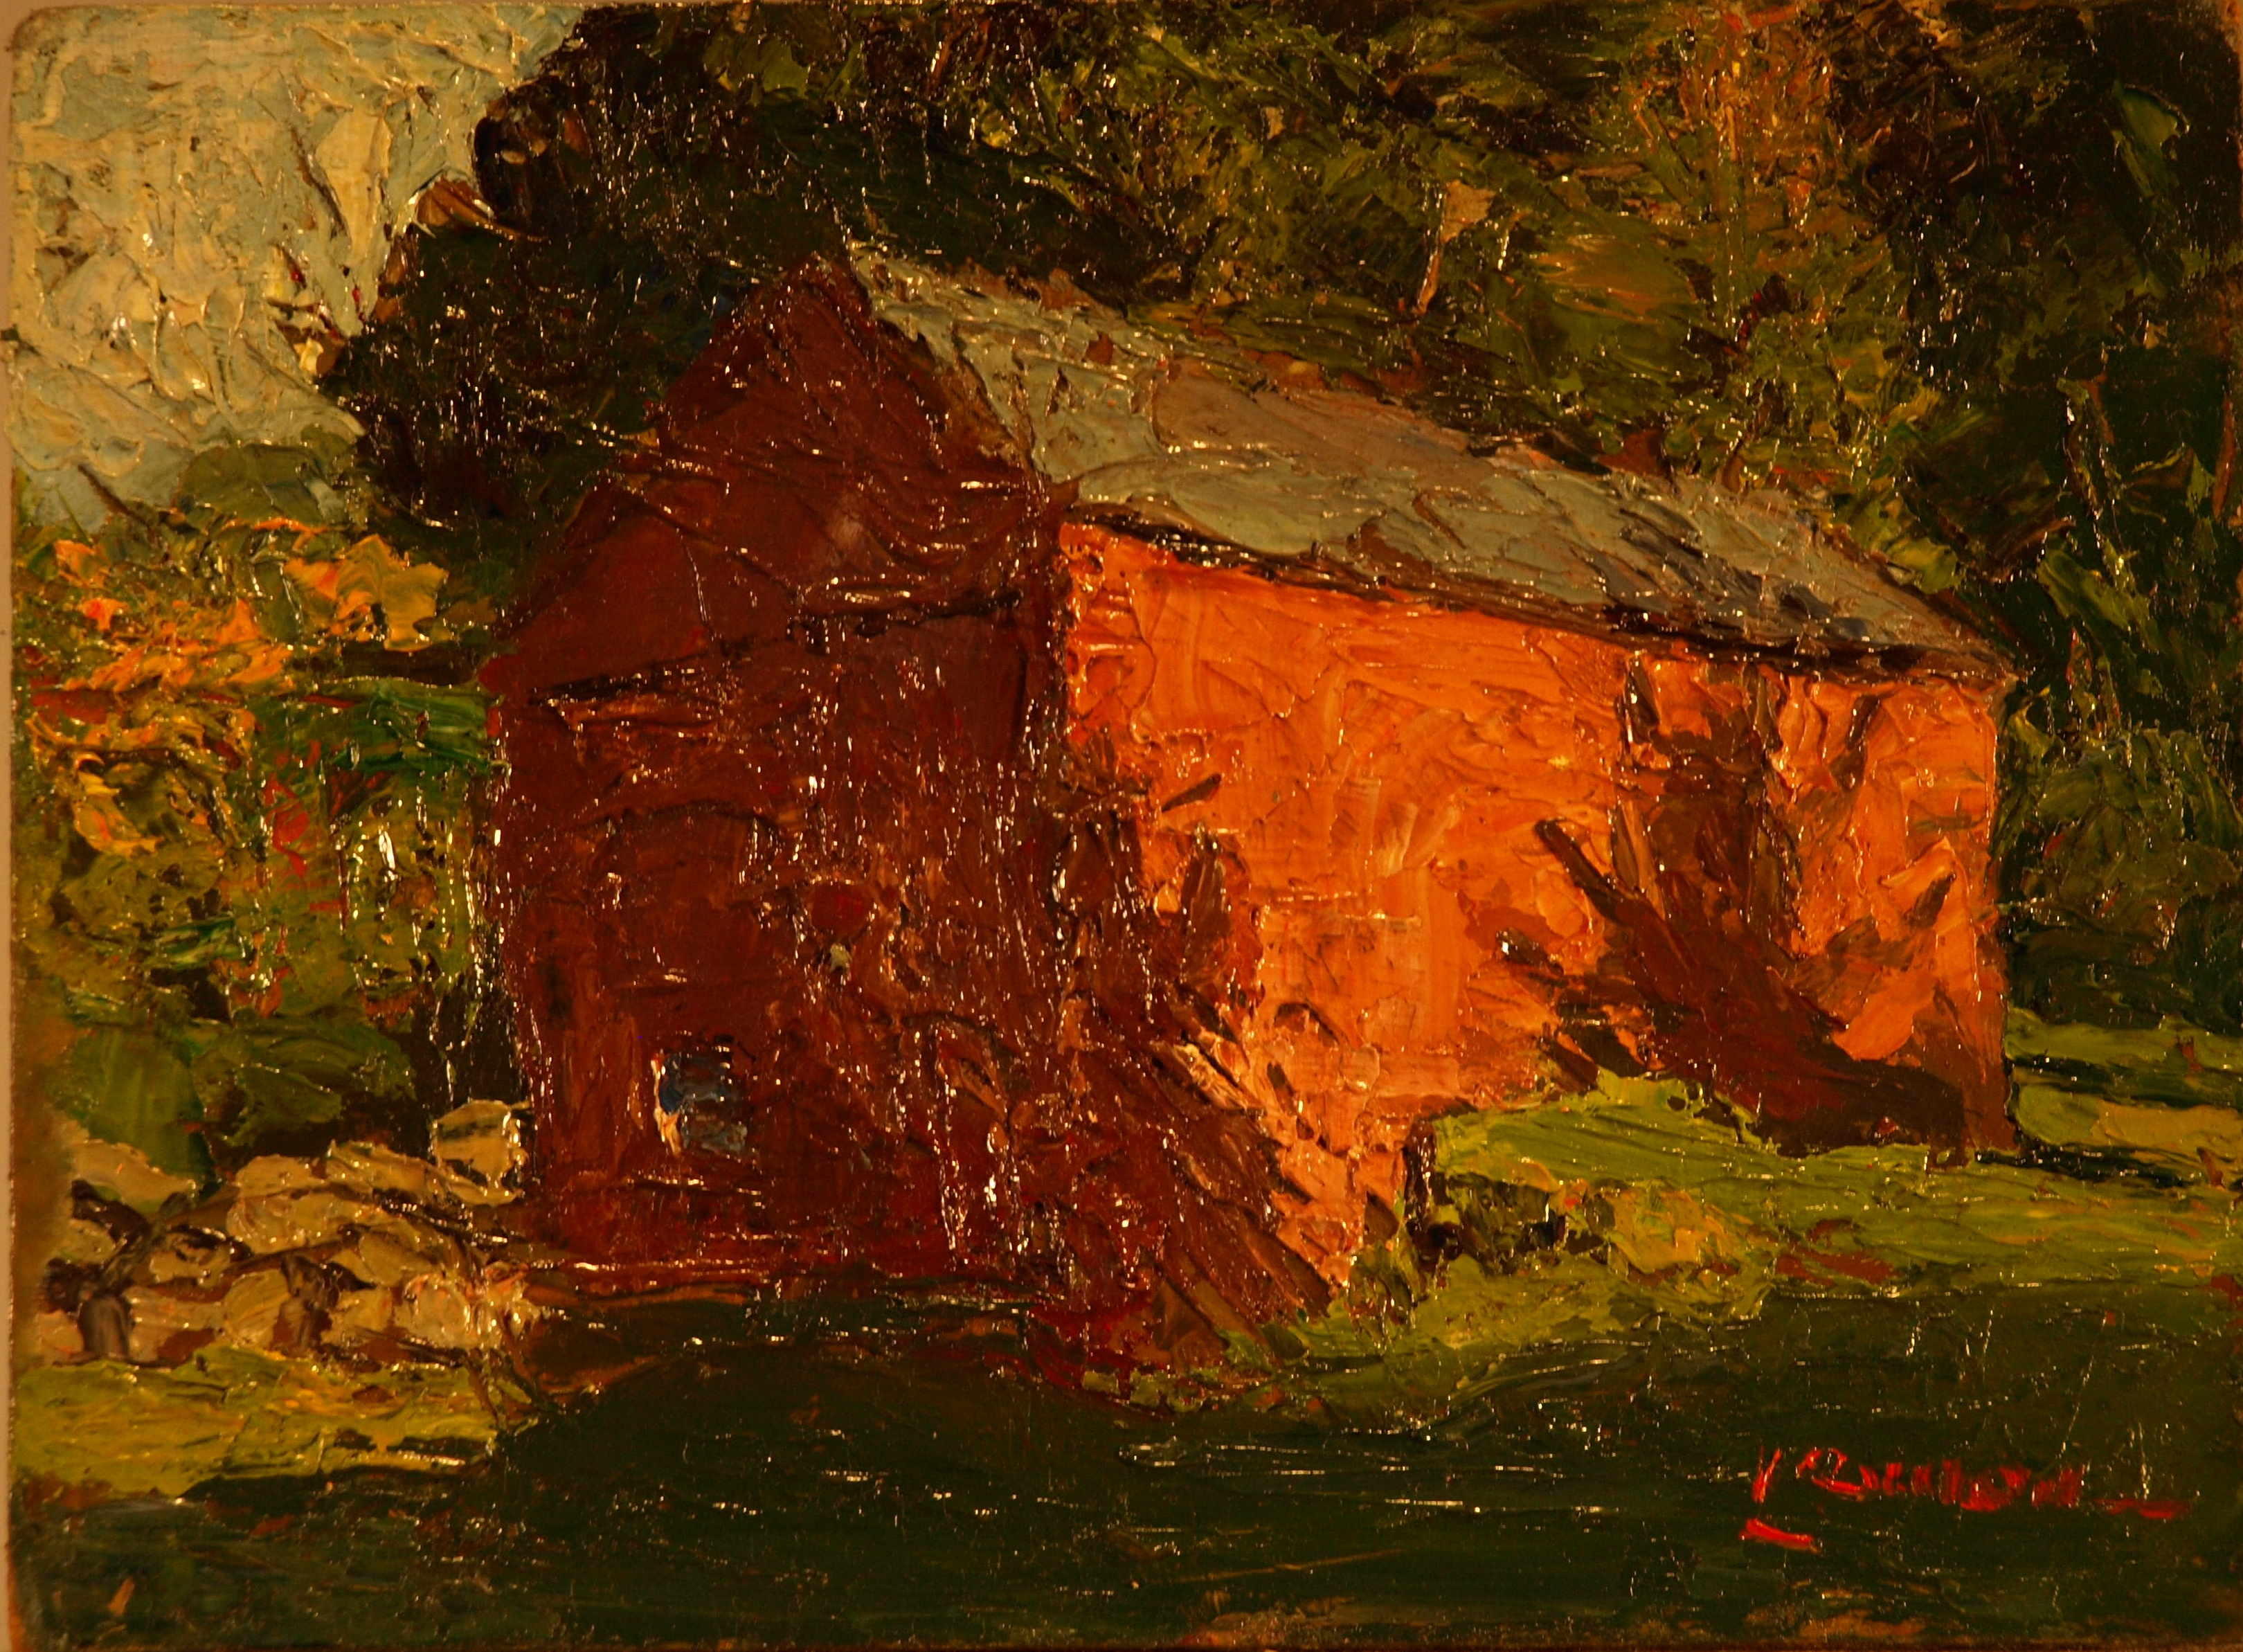 Lane's Barn, Oil on Panel, 6 x 8 Inches, by Bernard Lennon, $175